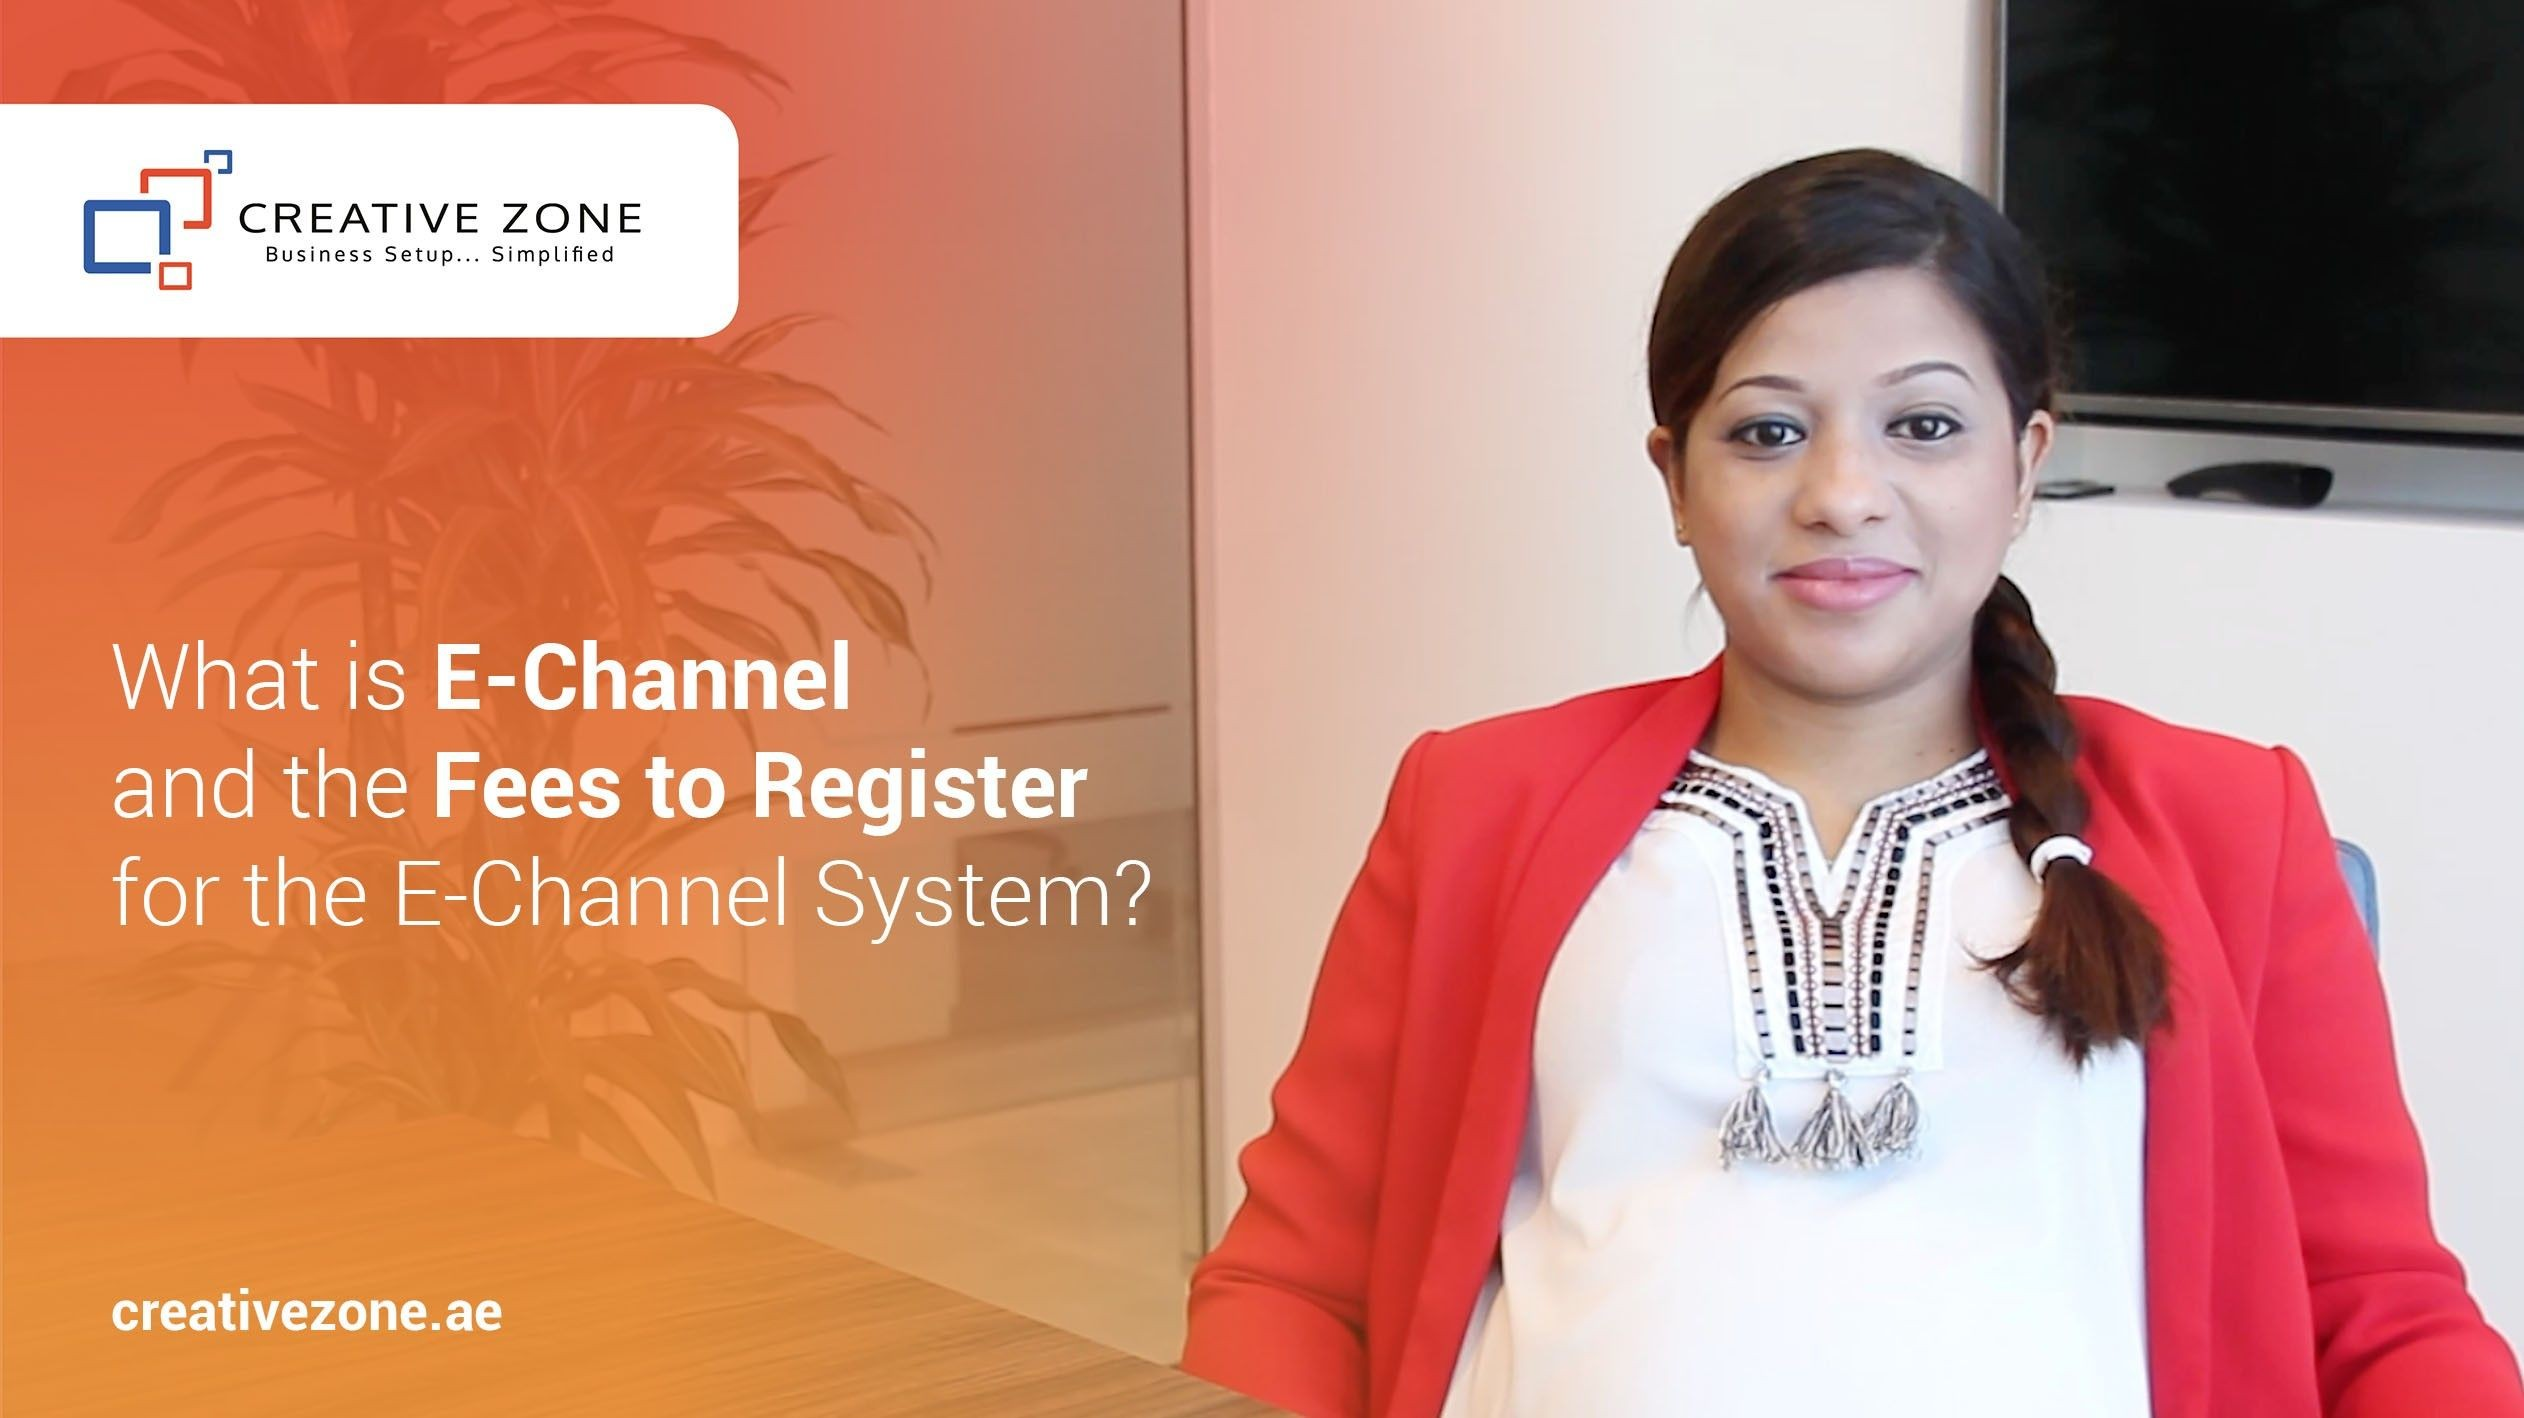 What is E-Channel and the Fees to Register for the E-Channel System in the UAE